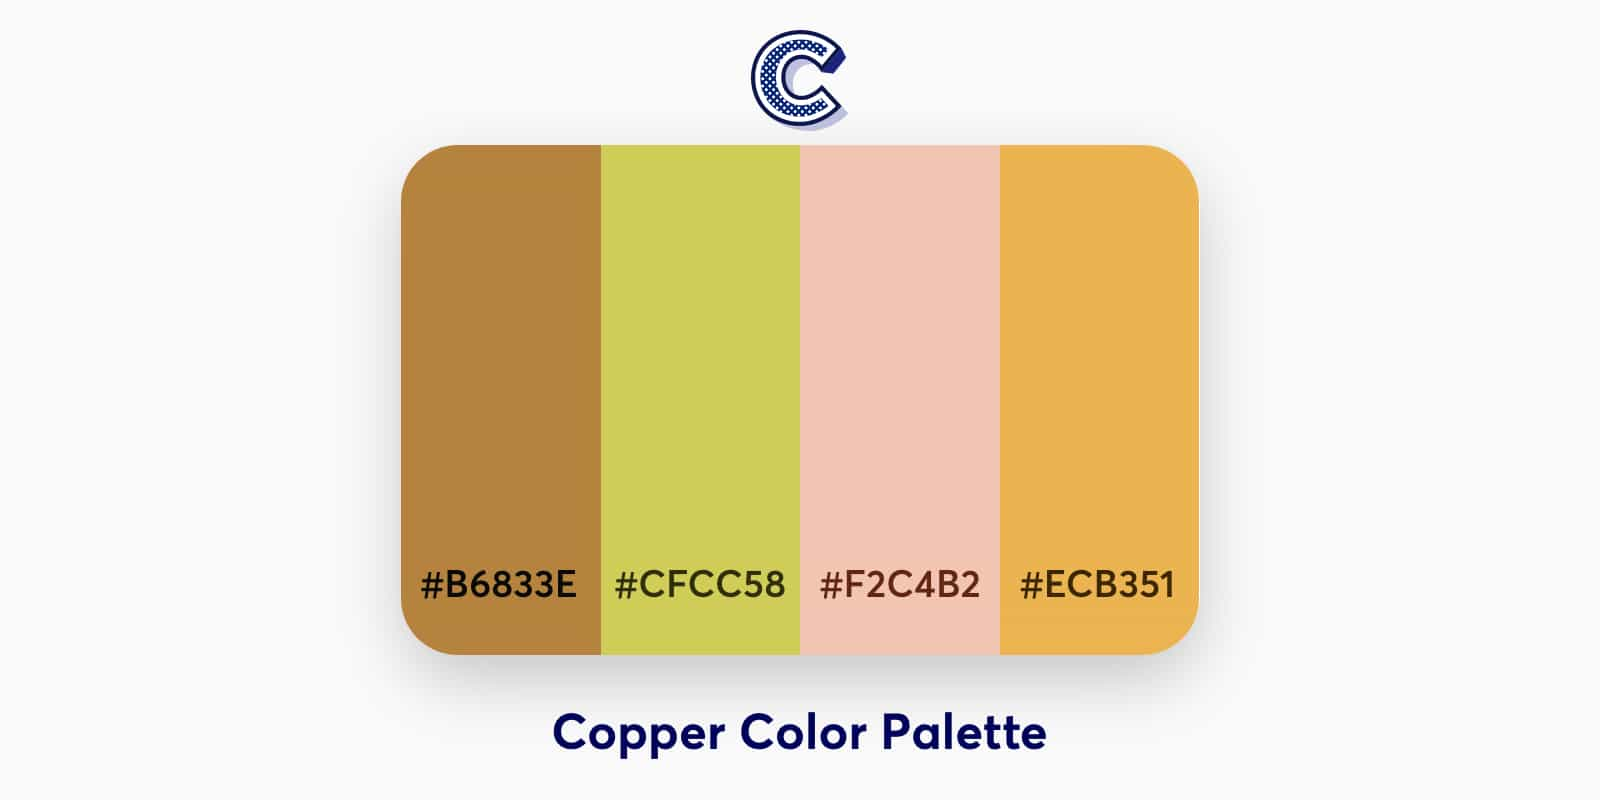 the featured image of copper color palette